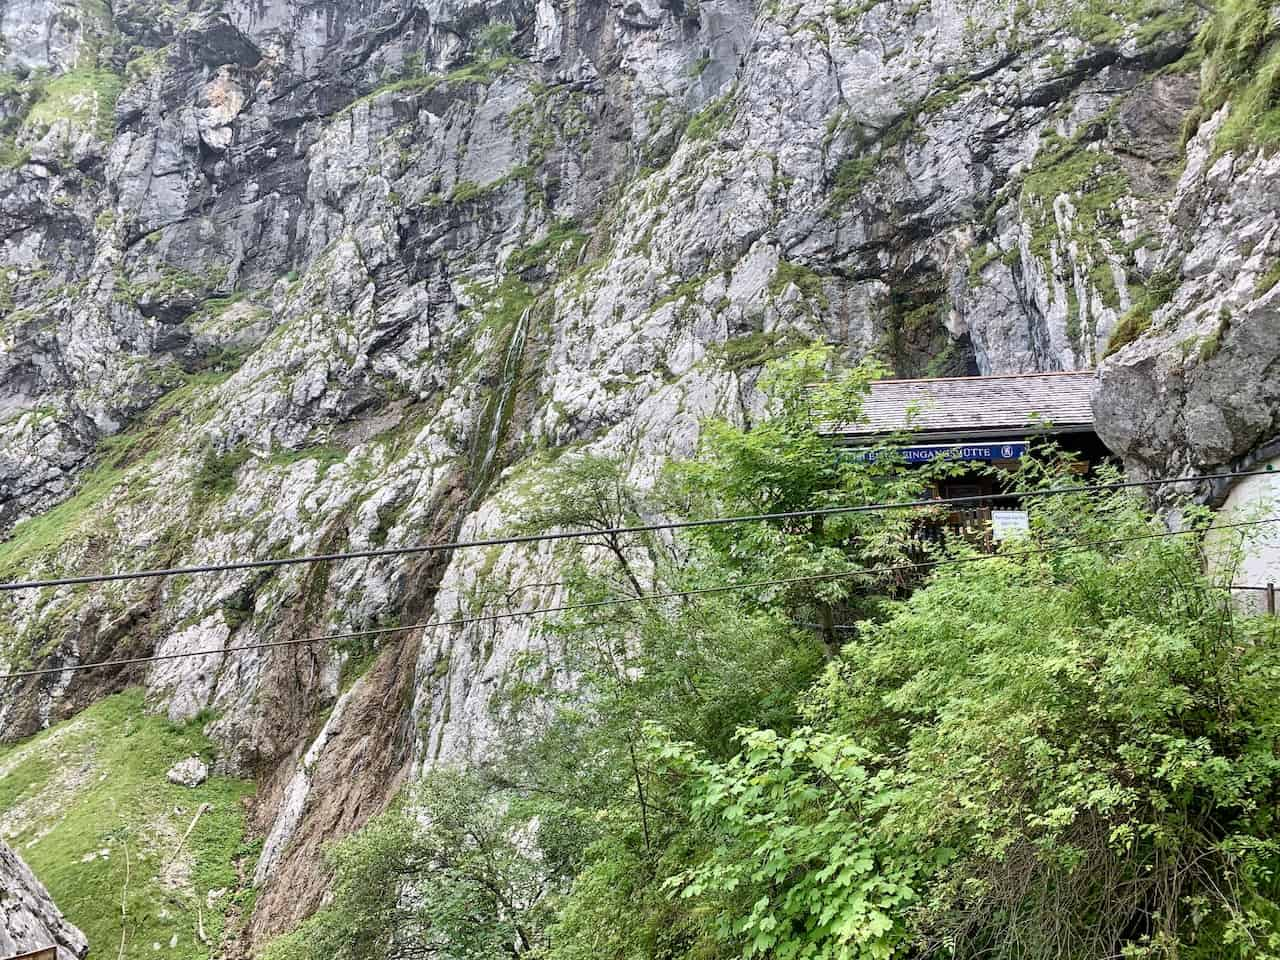 Höllentalklamm Gorge Entrance